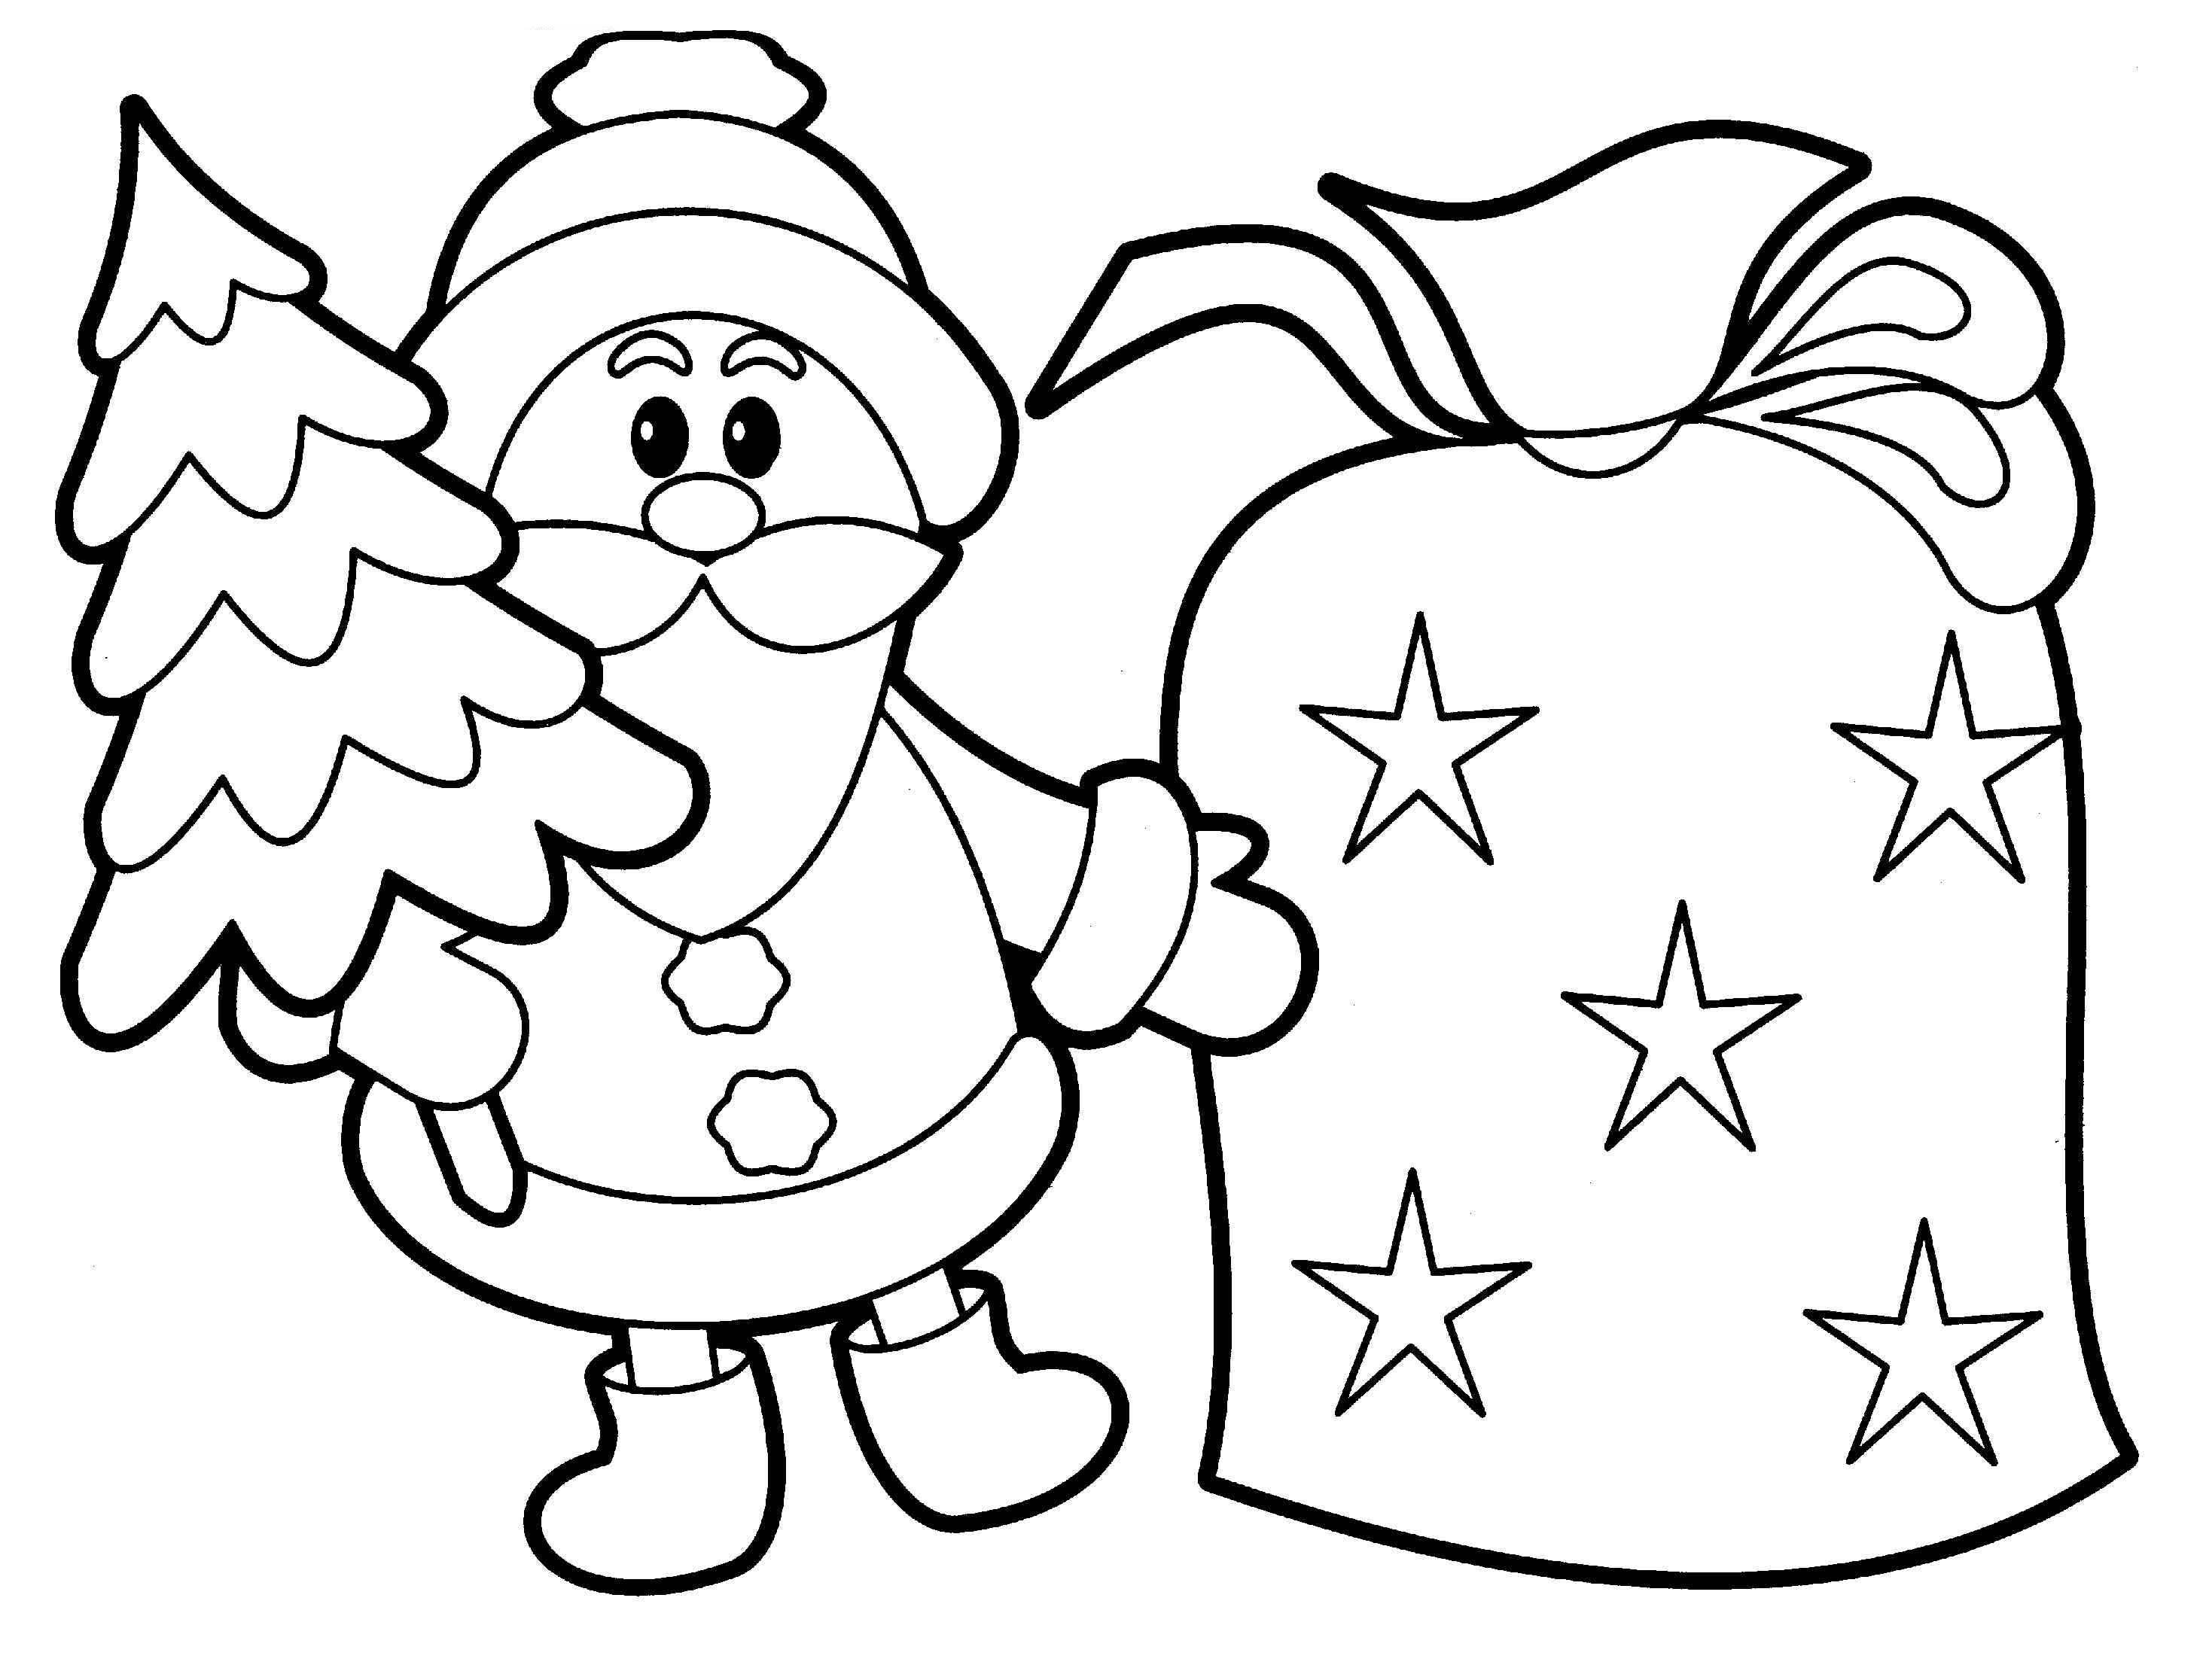 easy coloring pages to print - easy preschool coloring pages